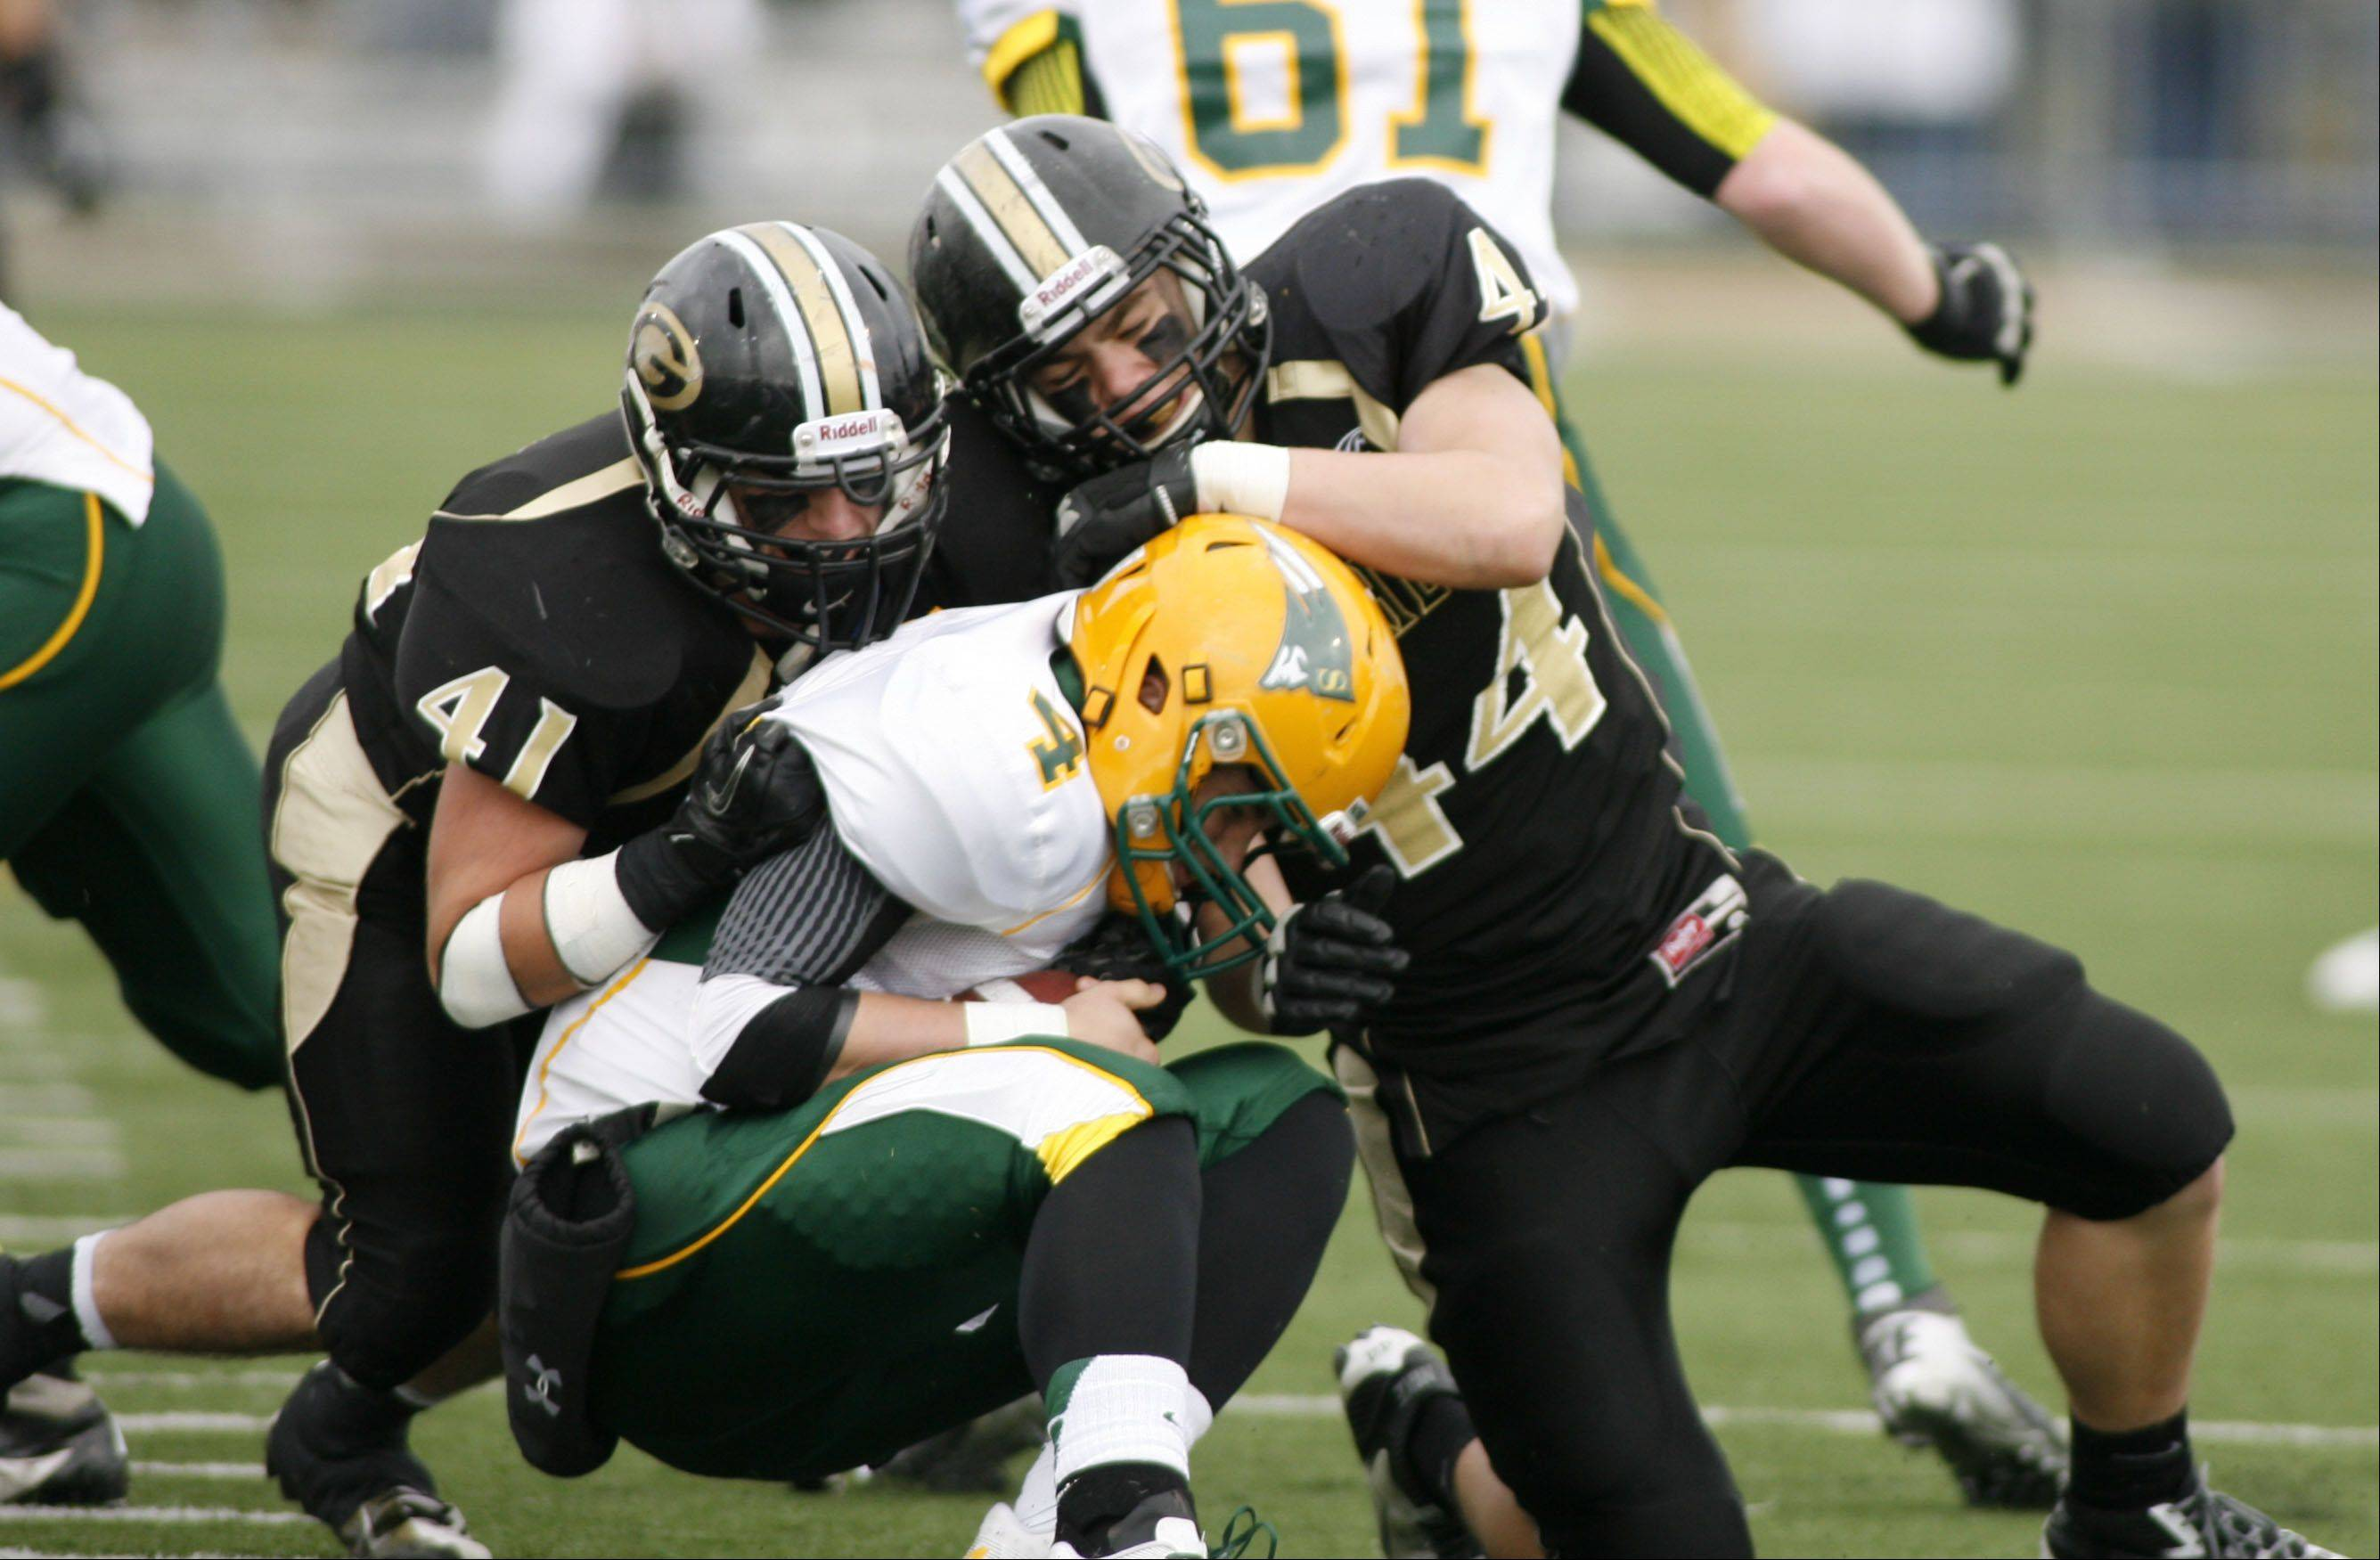 Daniel White/dwhite@dailyherald.com Glenbard North's Dominic Fornino (41) and Andrew Mulshine (44), sack Stevenson's Willie Bourbon (4), during second round Class 8A football playoffs.